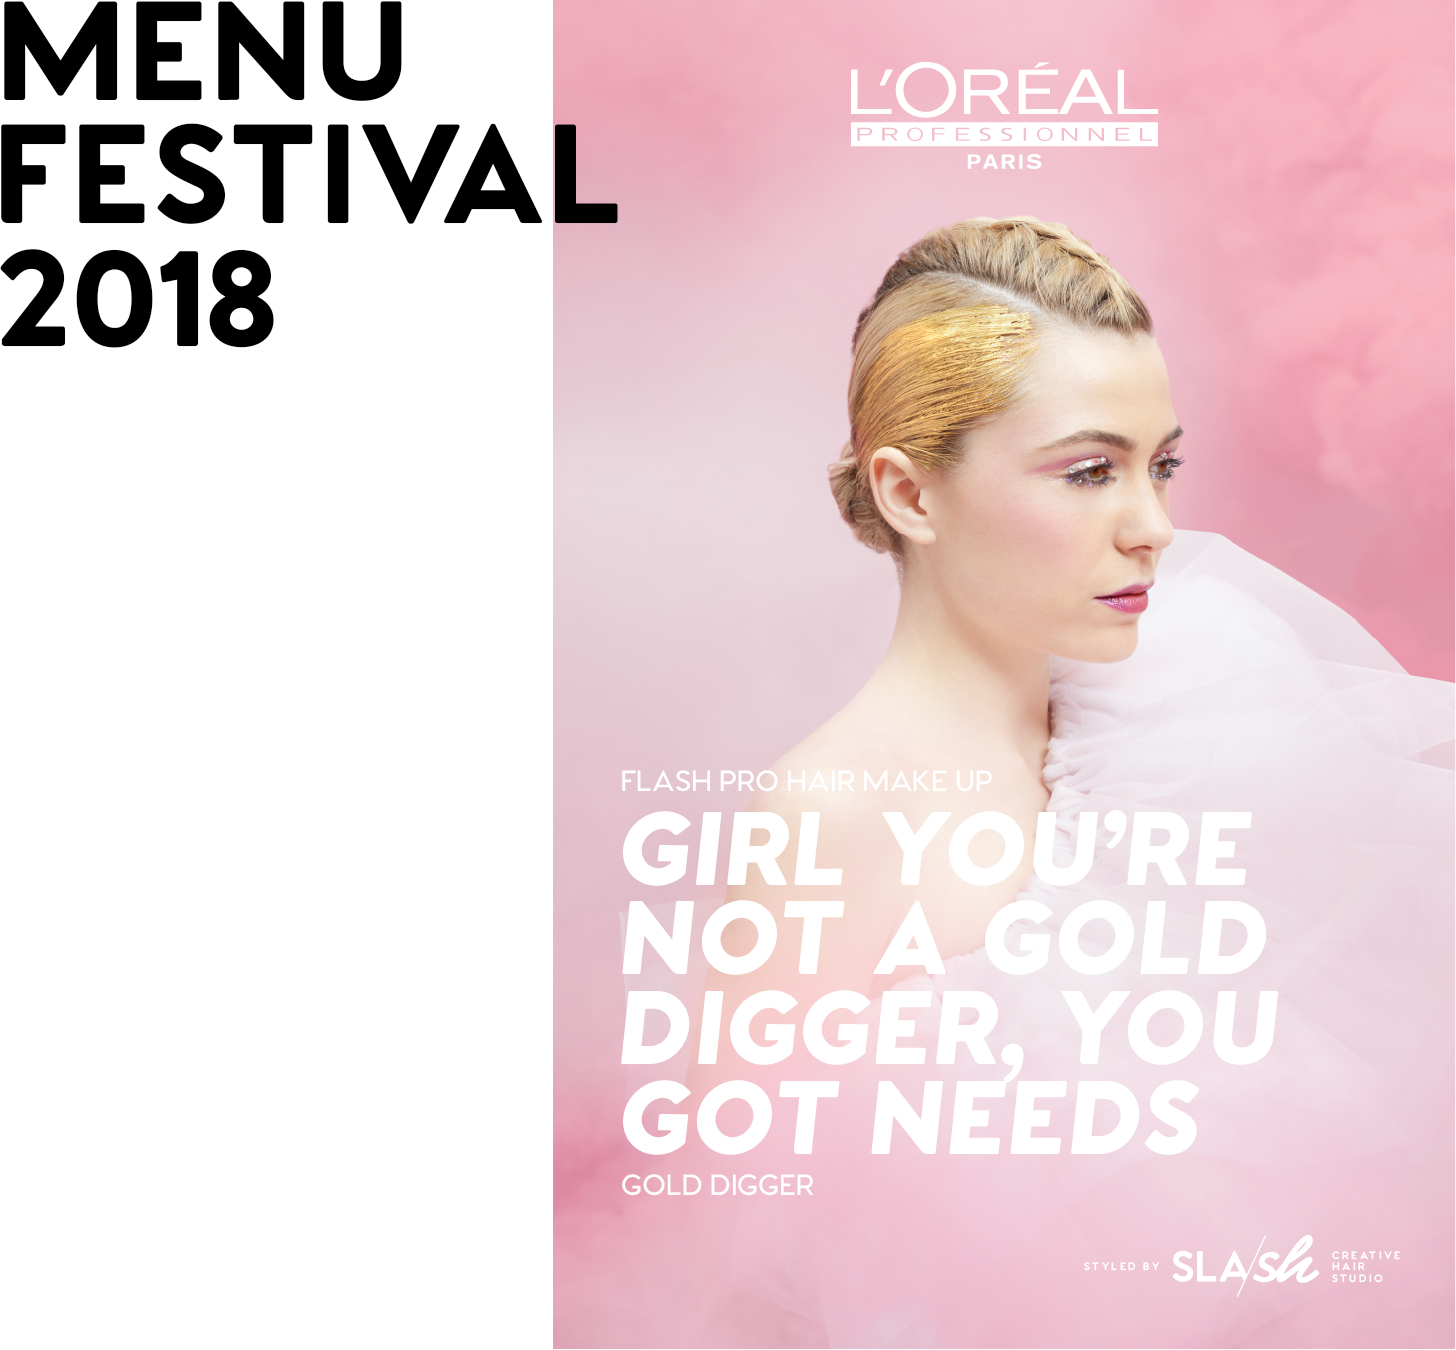 menu-festival-2018_3_girl_youre_not_a_gold_digger_you_got_needs